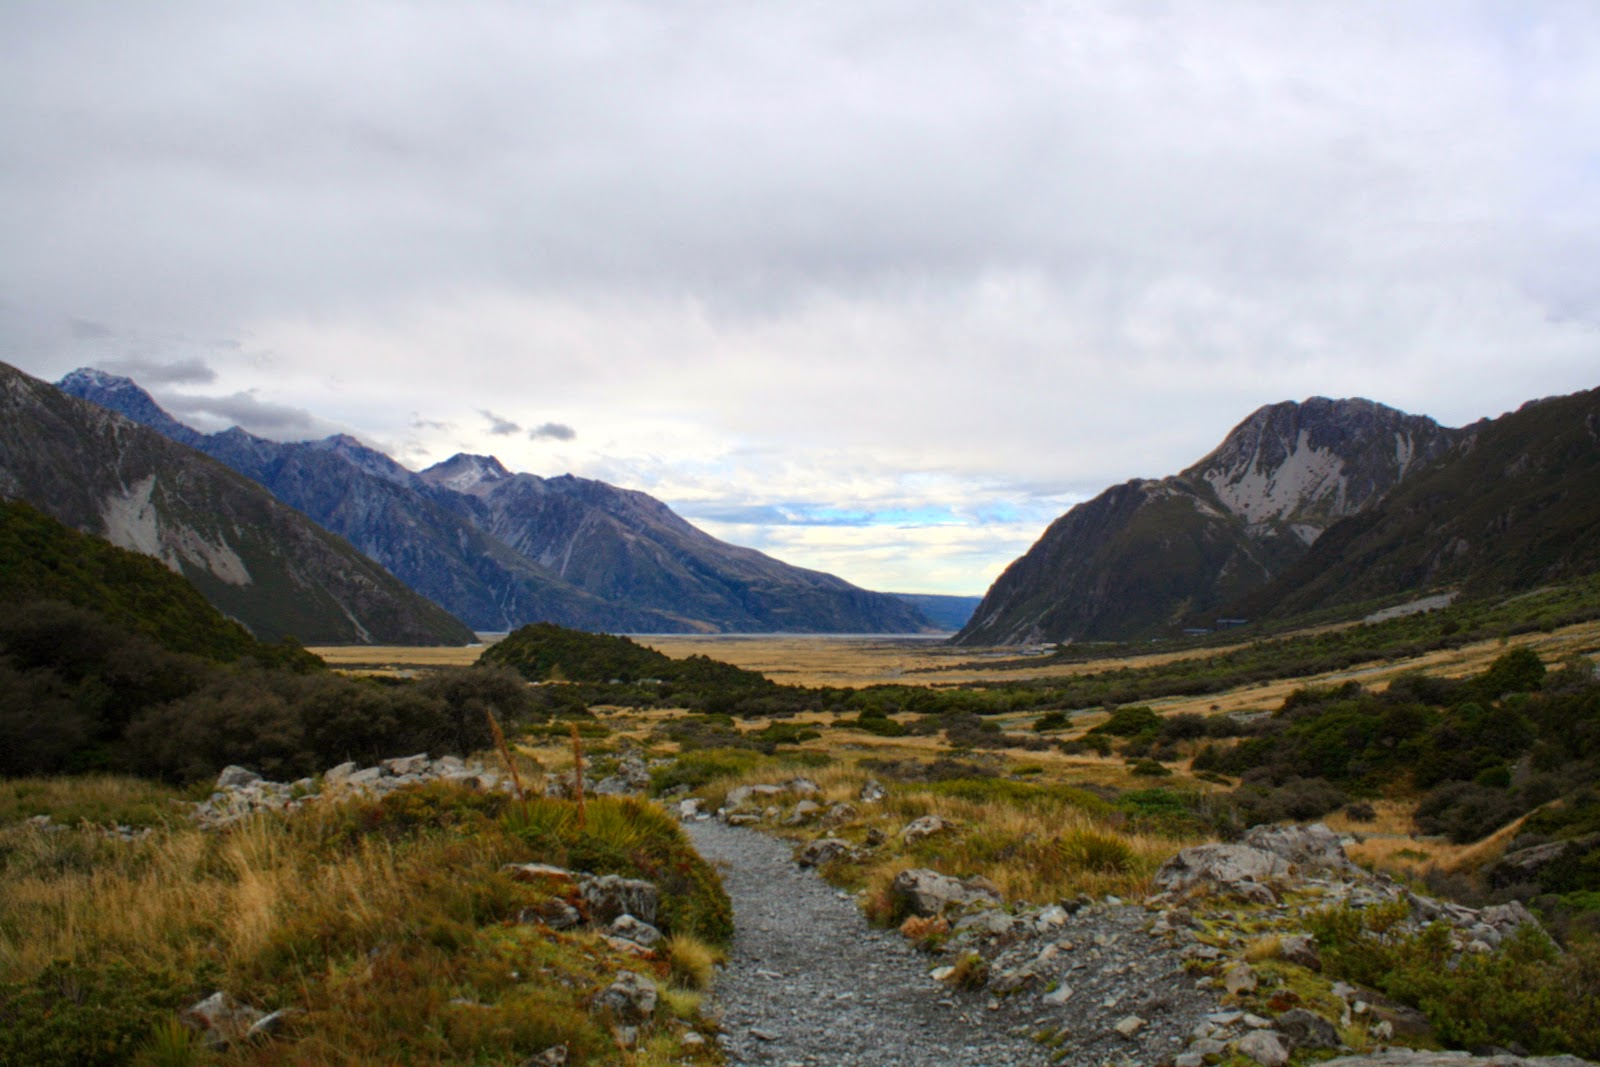 Going for a walk in Aoraki National Park.